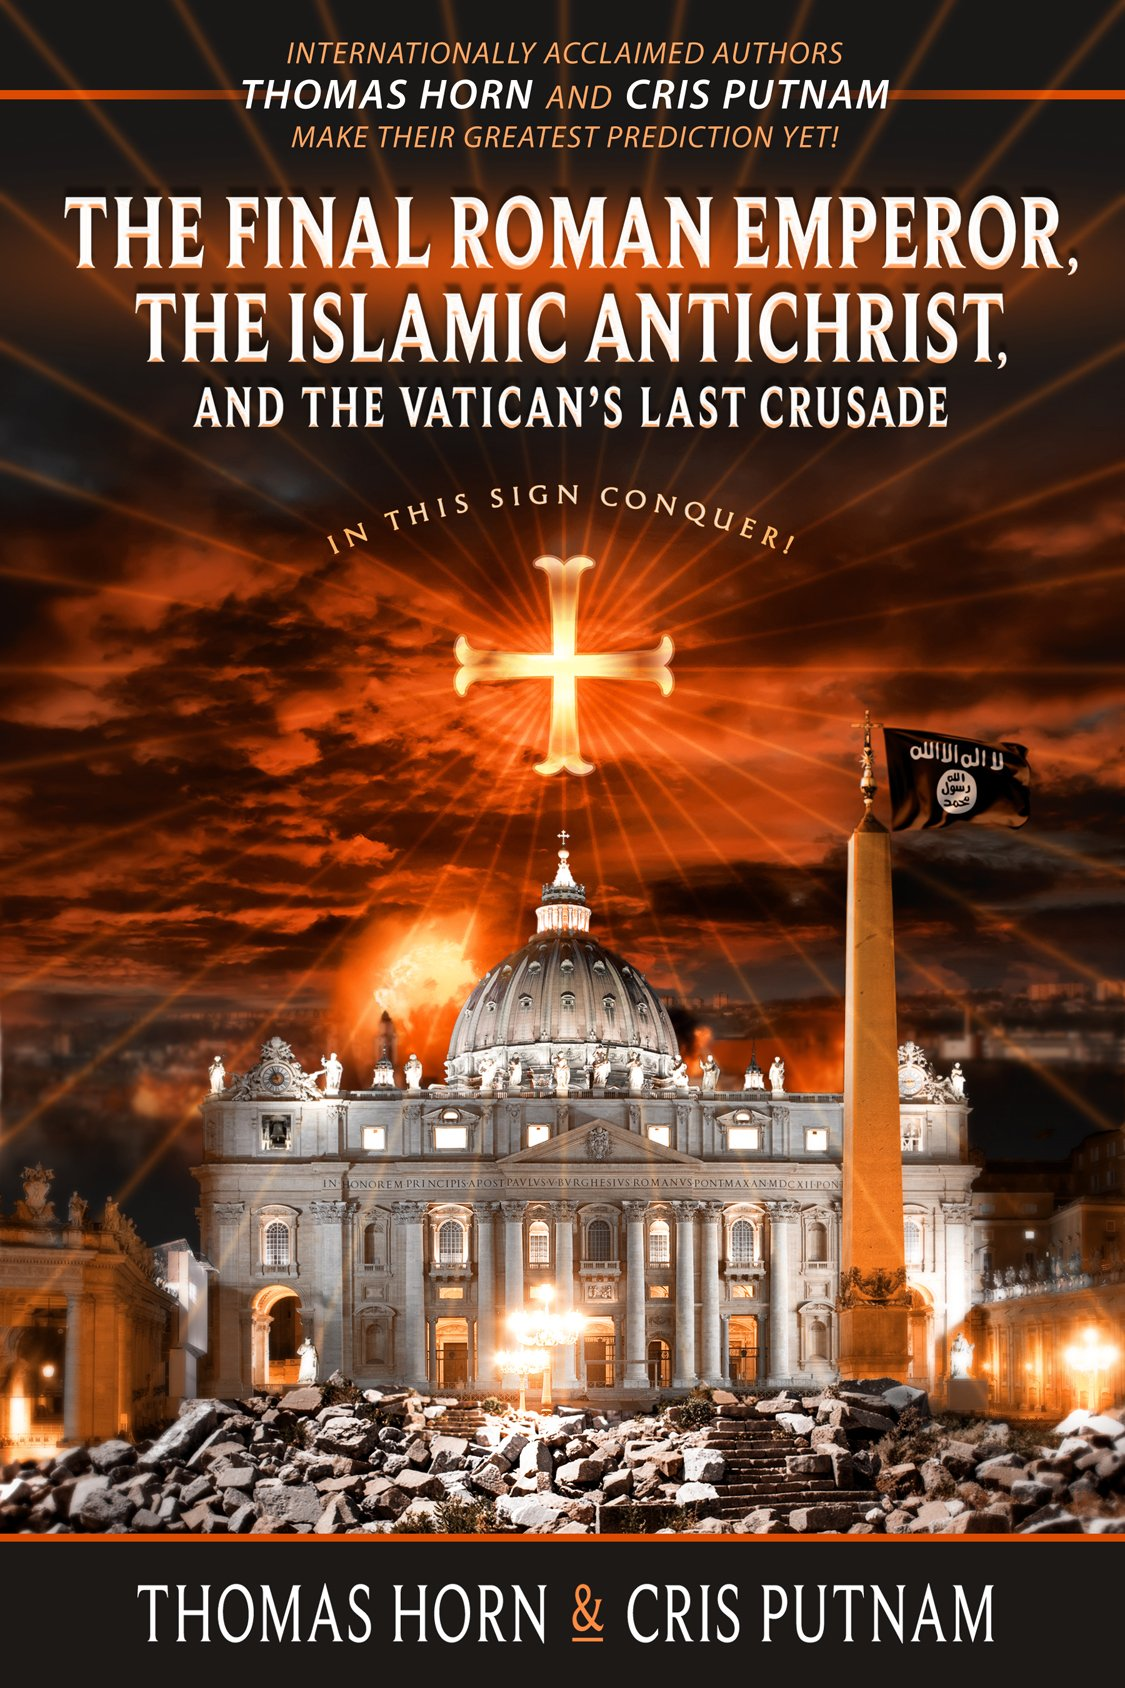 The Final Roman Emperor, The Islamic Antichrist, And The Vatican's Last  Crusade: Thomas Horn, Cris Putnam: 9780996409544: Amazon: Books